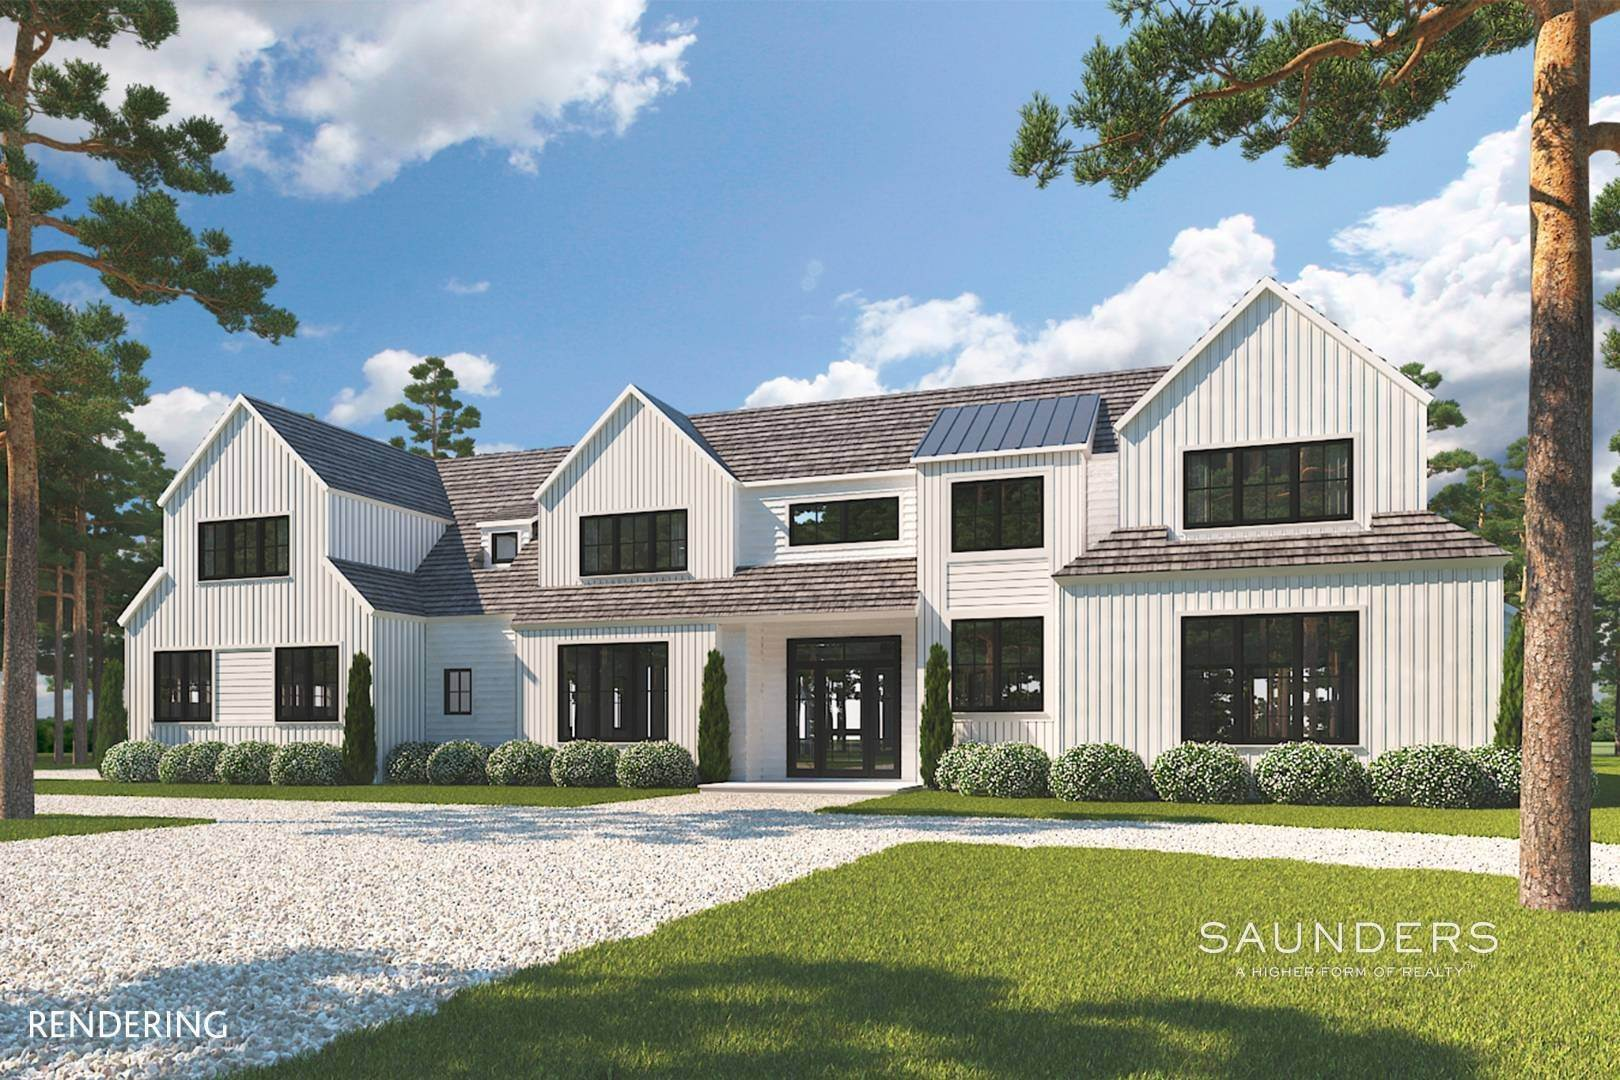 Single Family Homes for Sale at New Construction In Sagaponack With Tennis 363 Wainscott Harbor Road, Sagaponack, Southampton Town, NY 11968